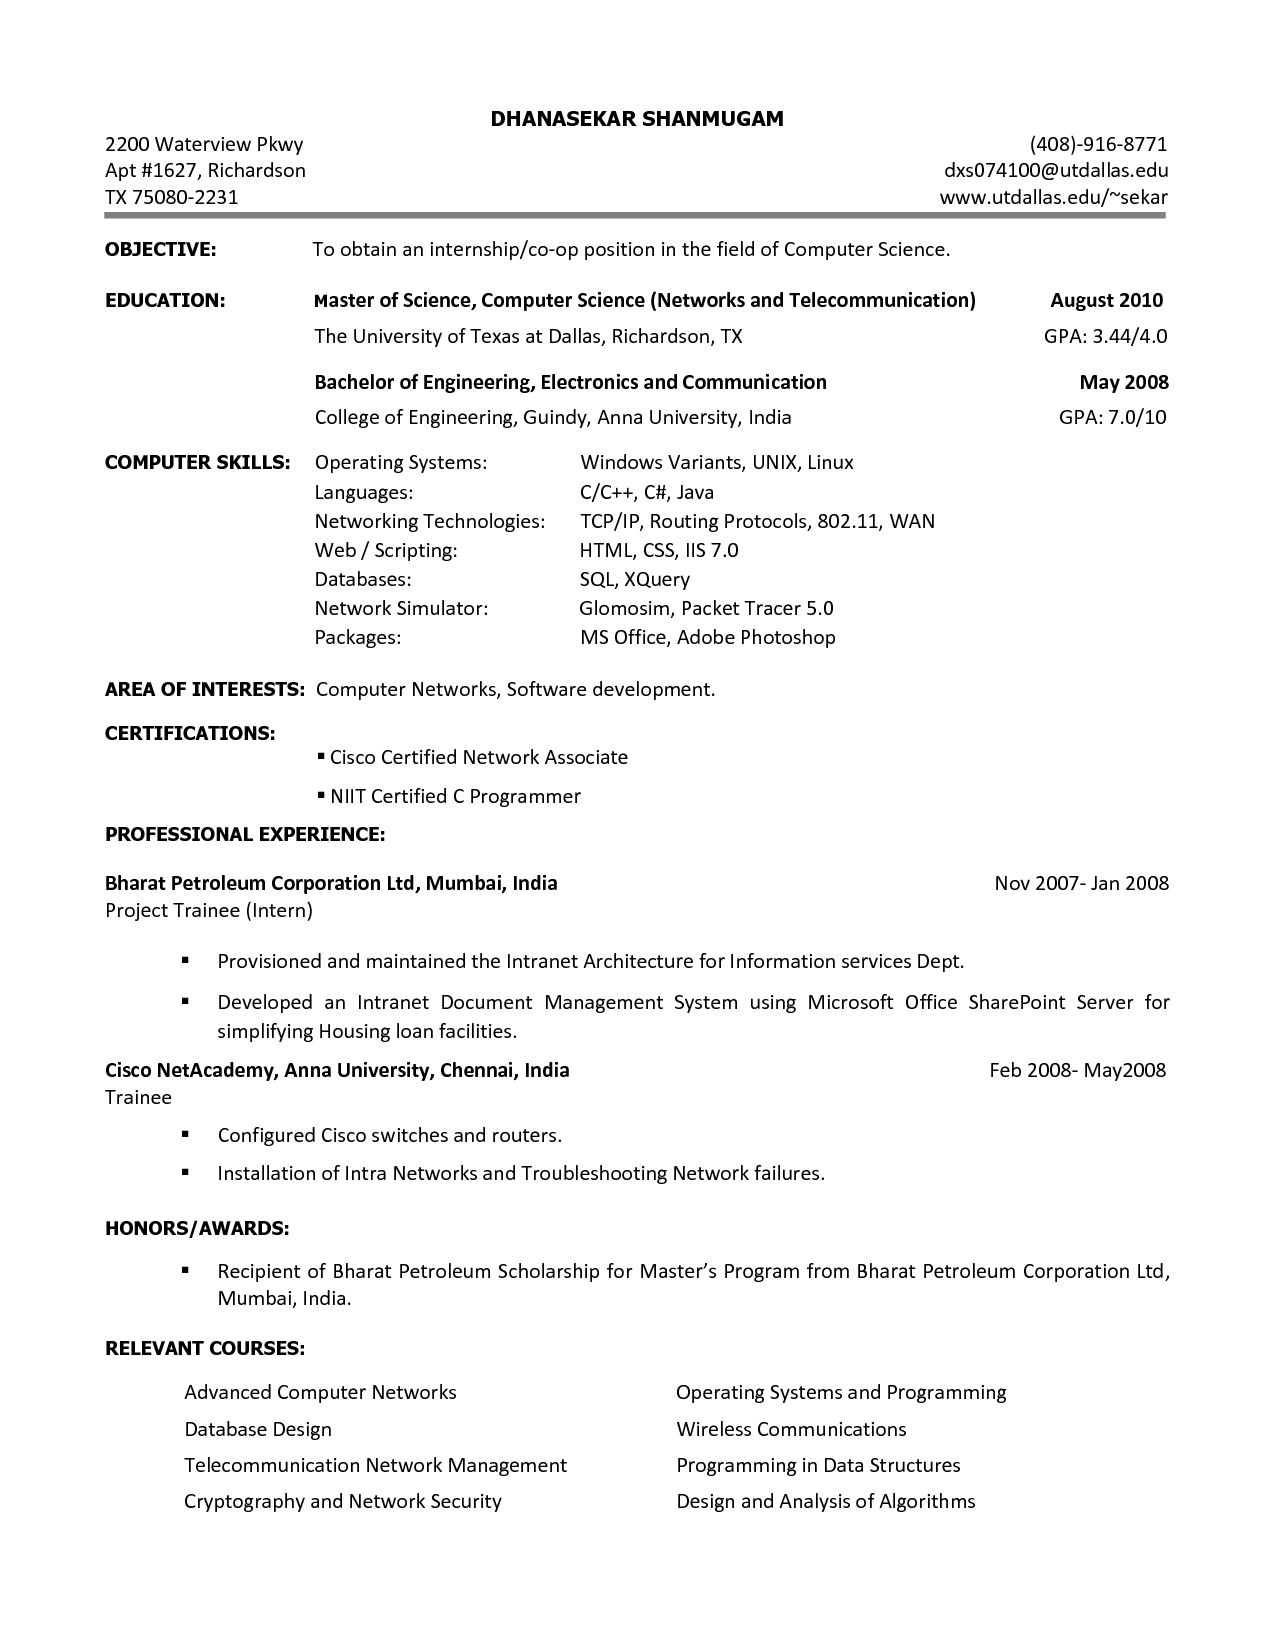 you can find cover letter and free cv resume writing cv samples and resume examples - Computer Science Resume Writing